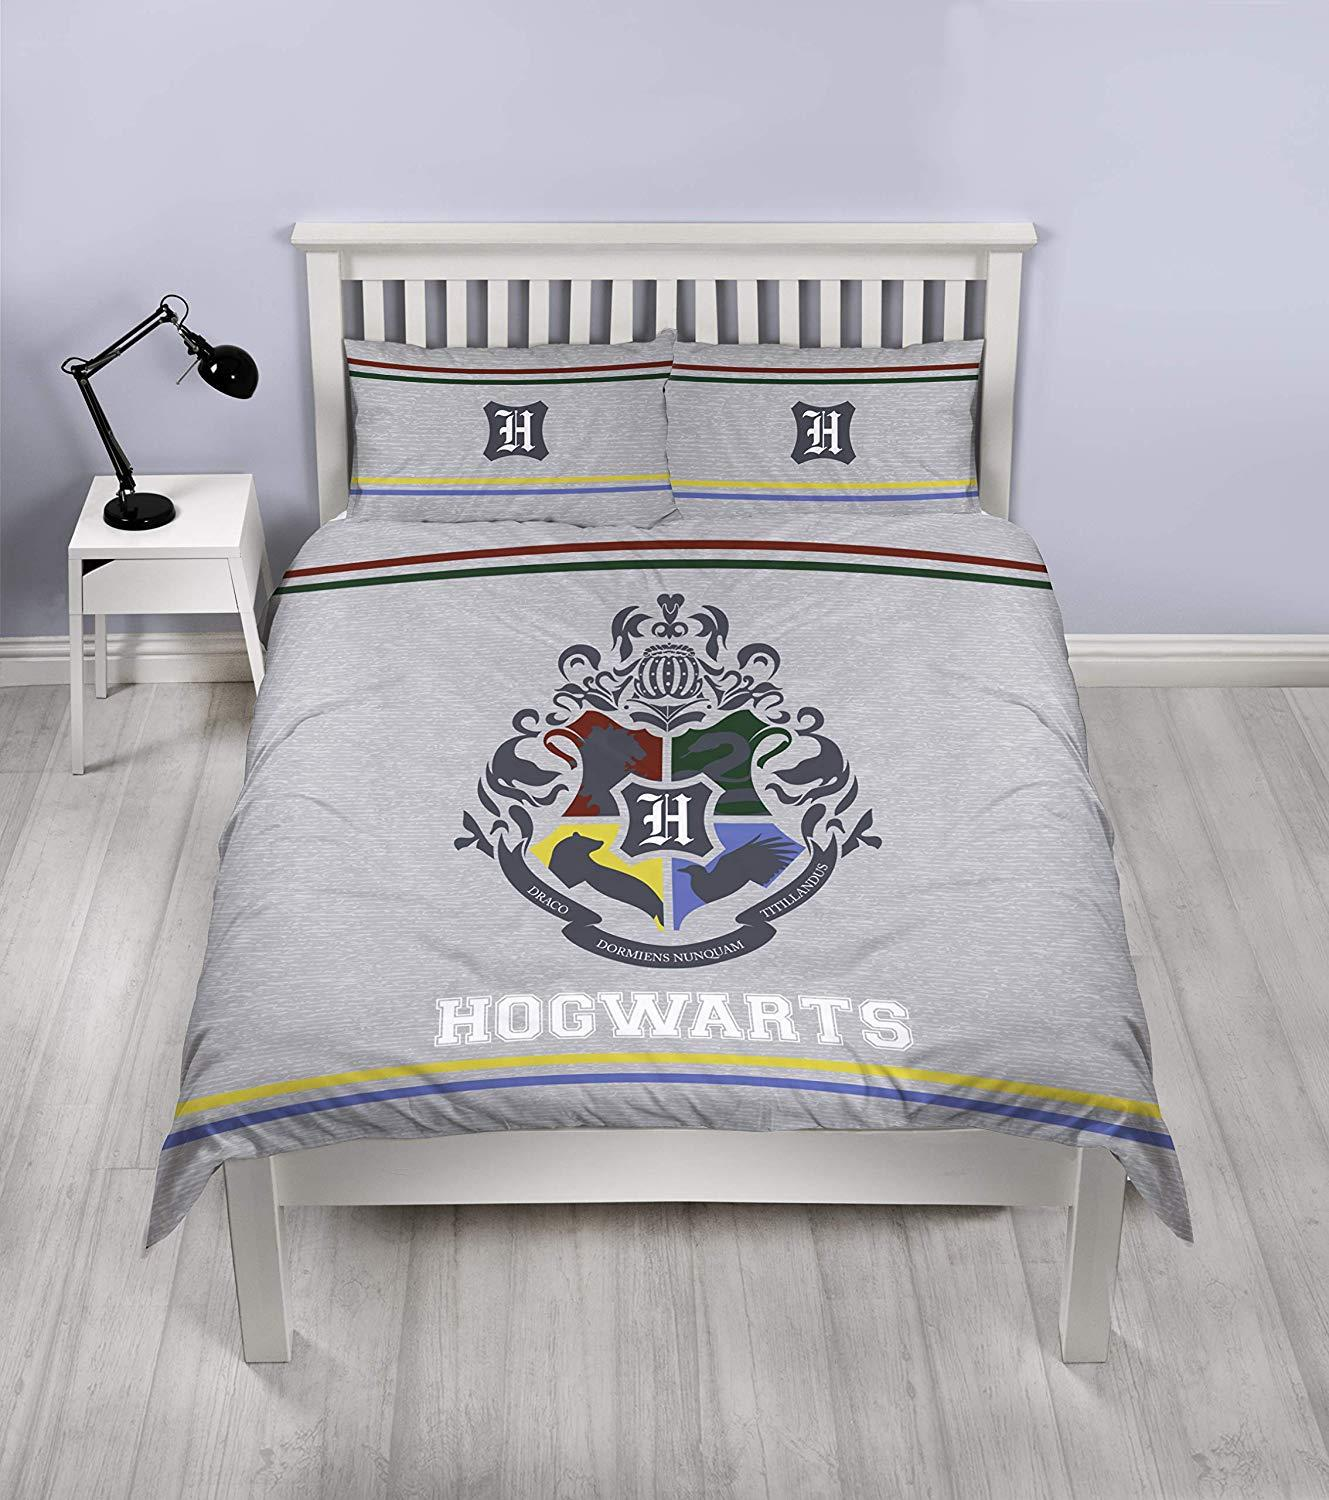 Official-Harry-Potter-Licensed-Duvet-Covers-Single-Double-Muggles-Hogwarts-Charm thumbnail 3